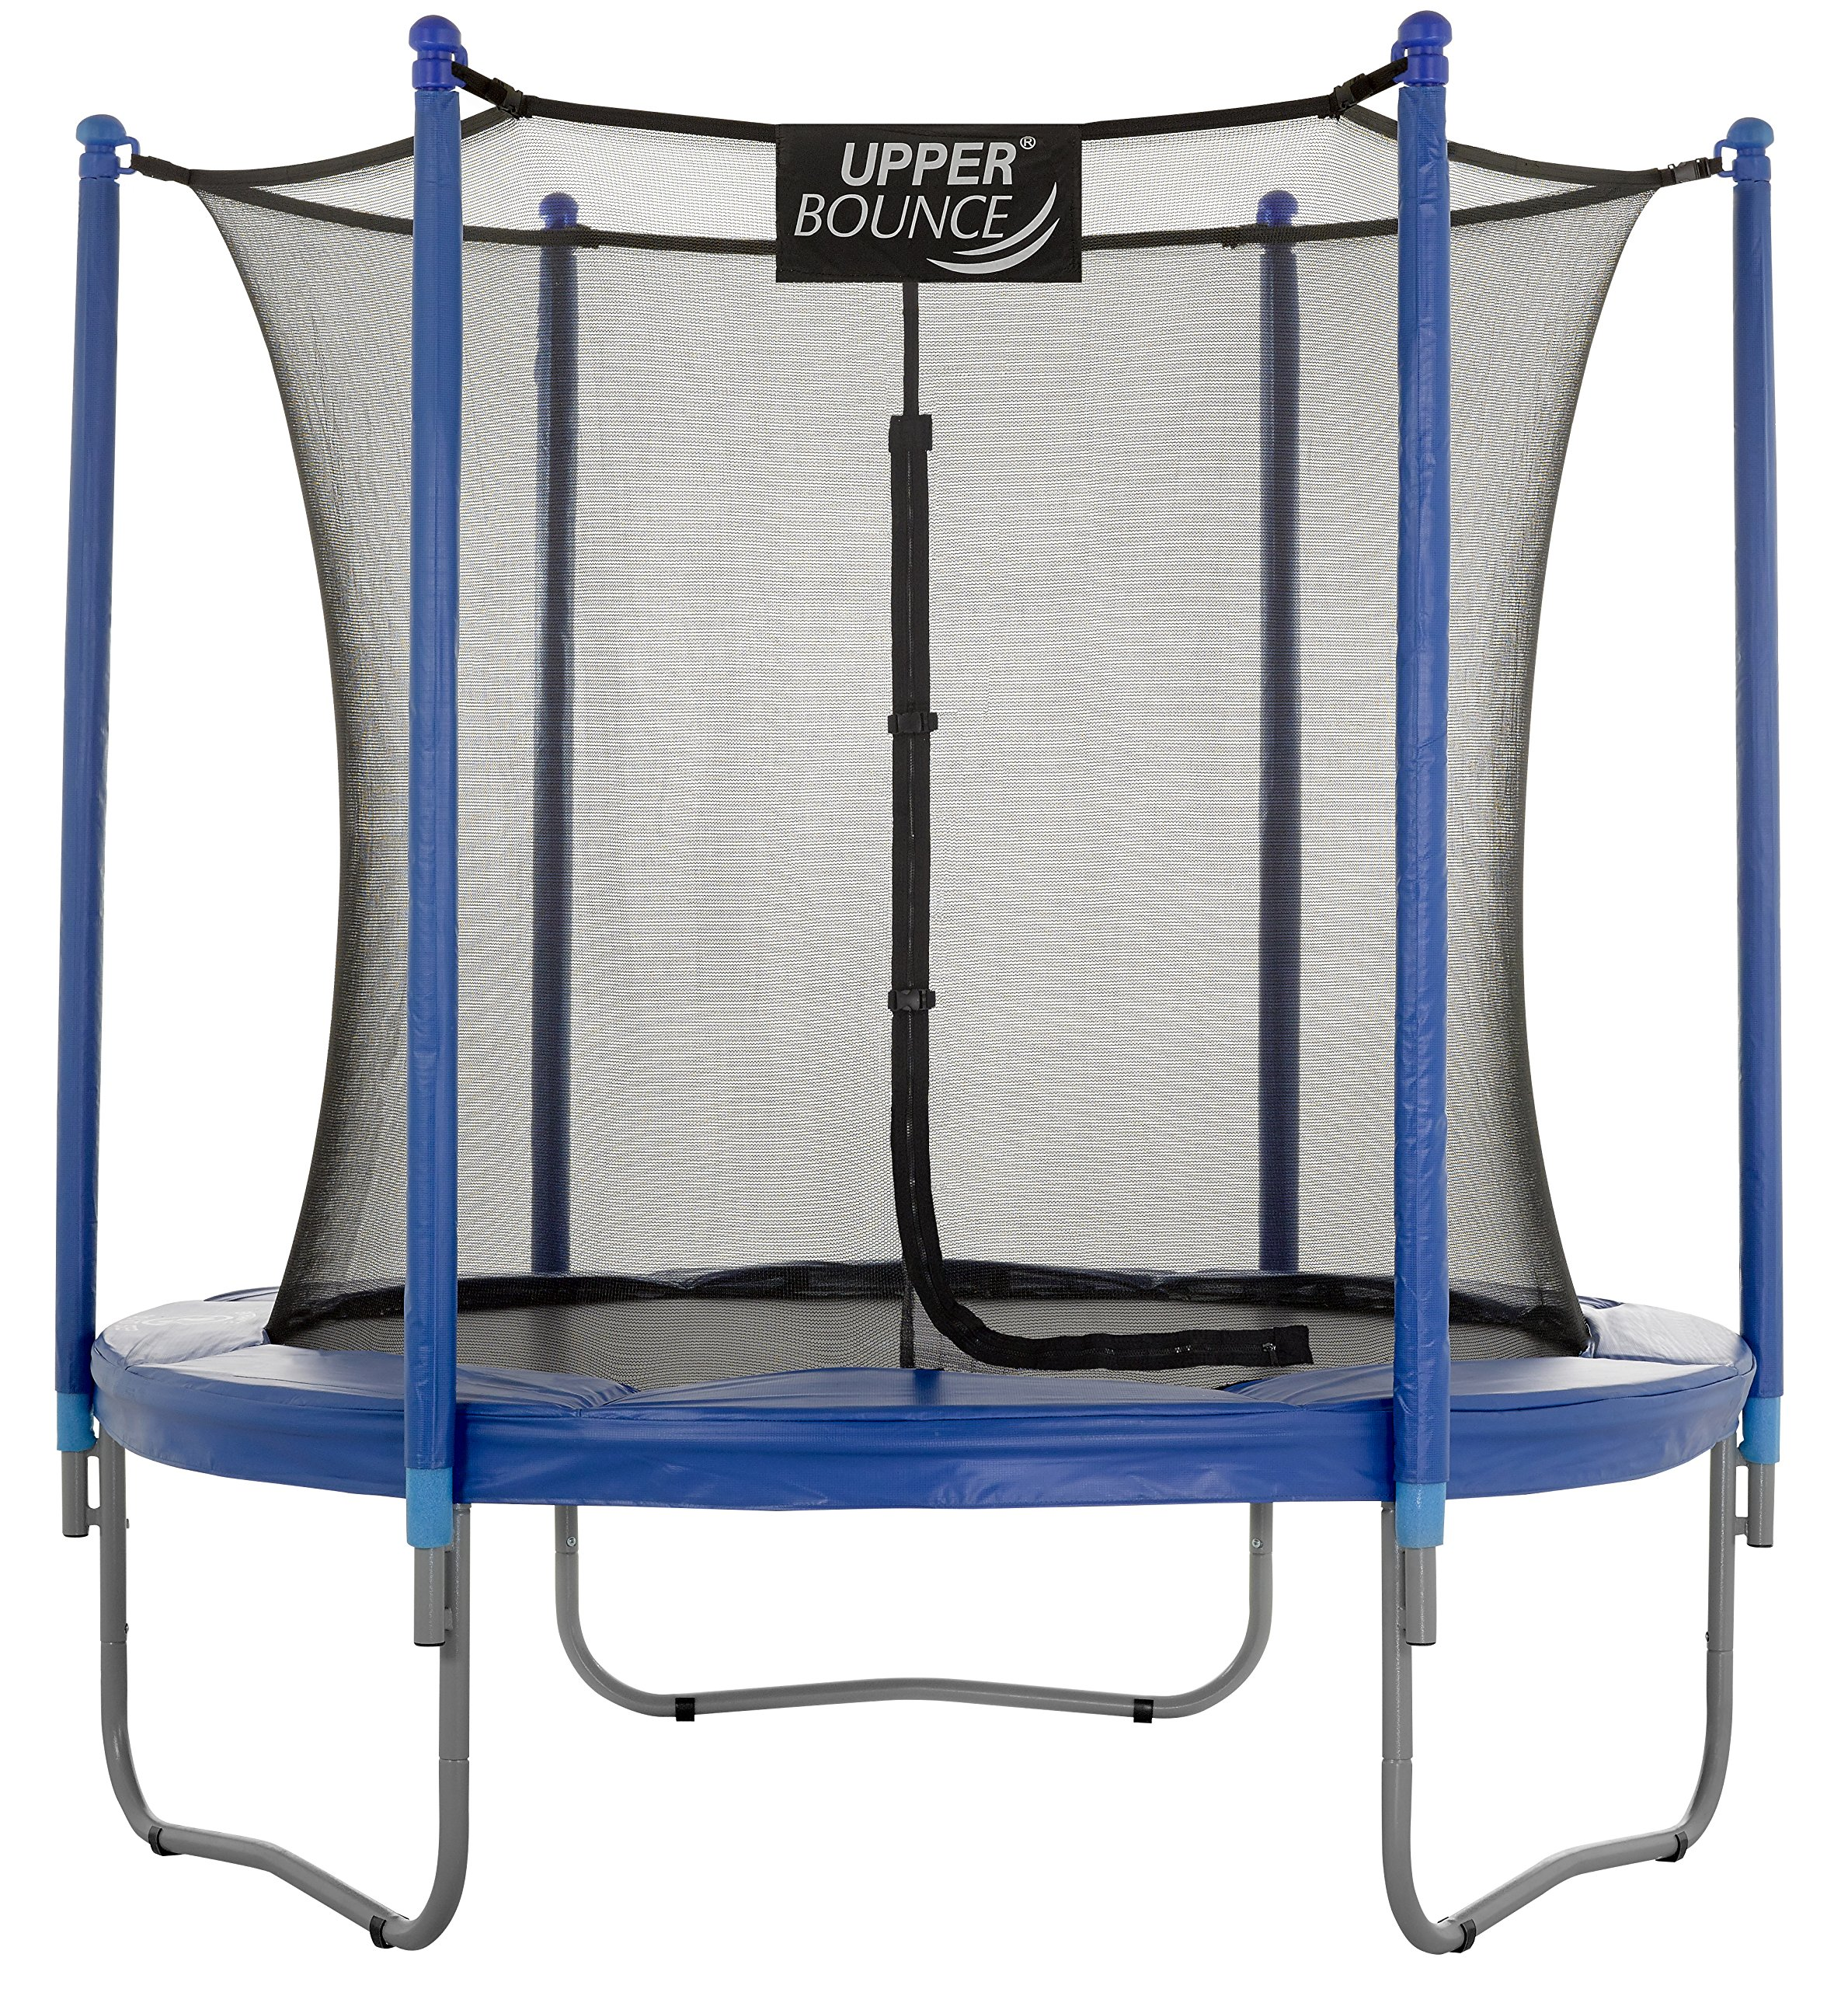 Upper Bounce 7.5 FT. Trampoline & Enclosure Set equipped with the New ''EASY ASSEMBLE FEATURE''